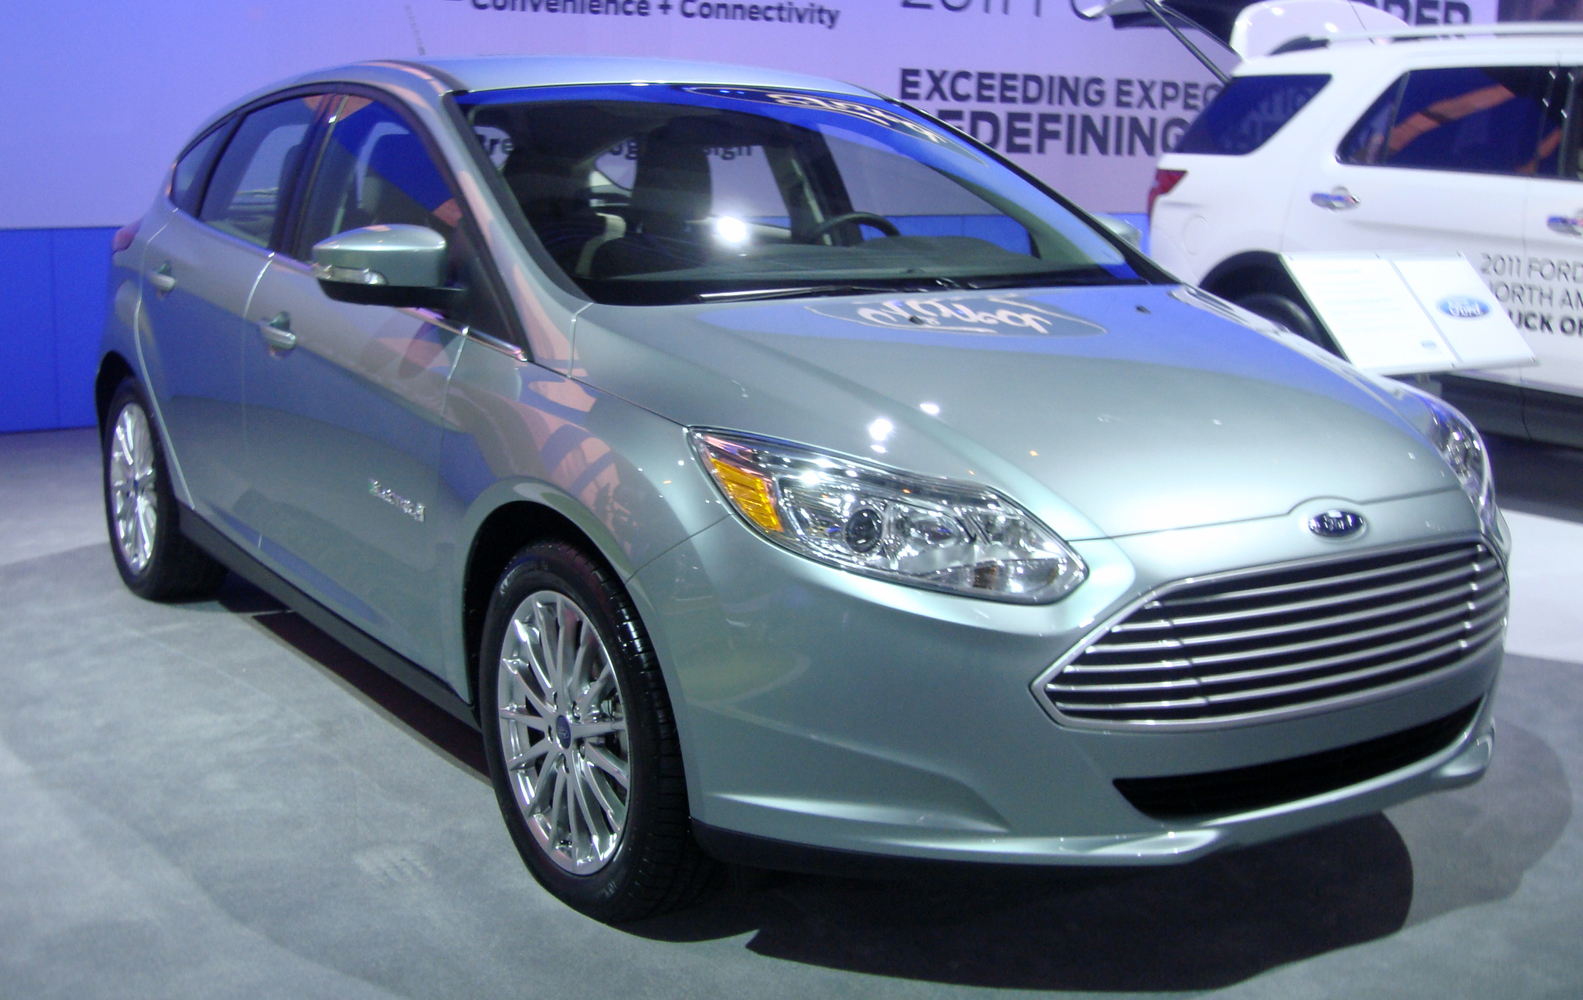 Ford_Focus_Electric_WAS_2011_924.JPG